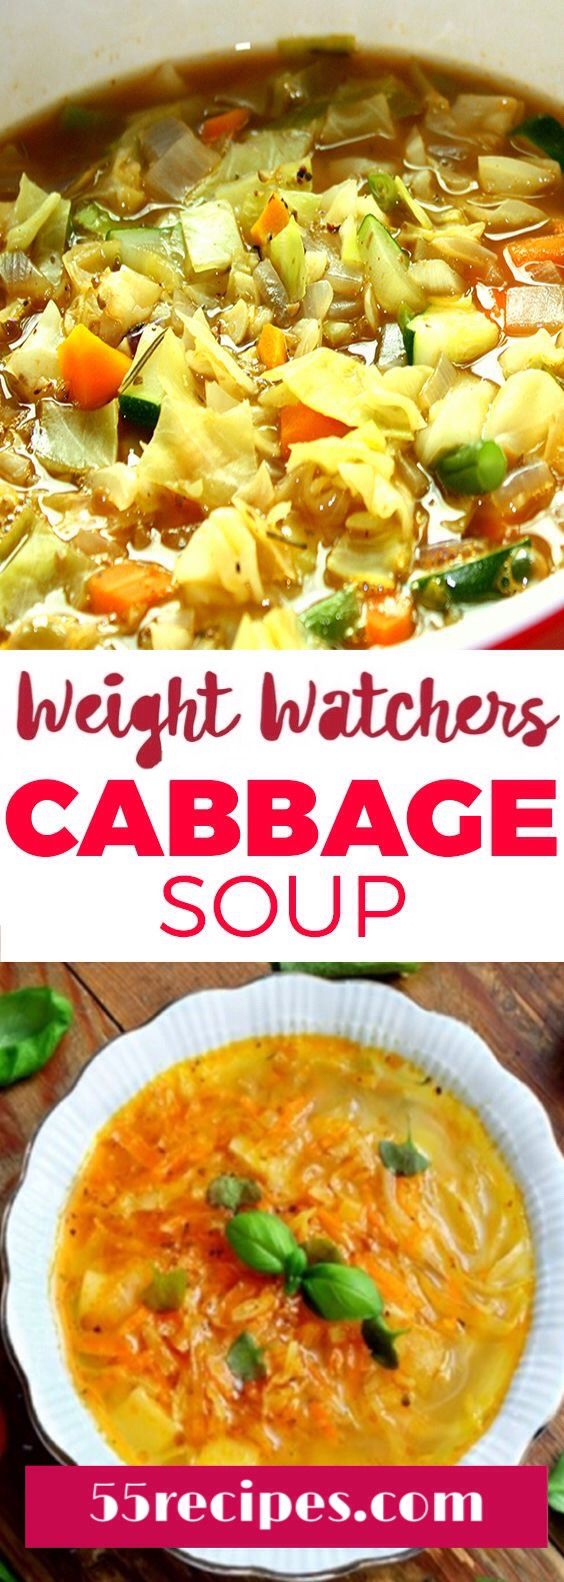 Pin On Weight Watchers Soup Recipes